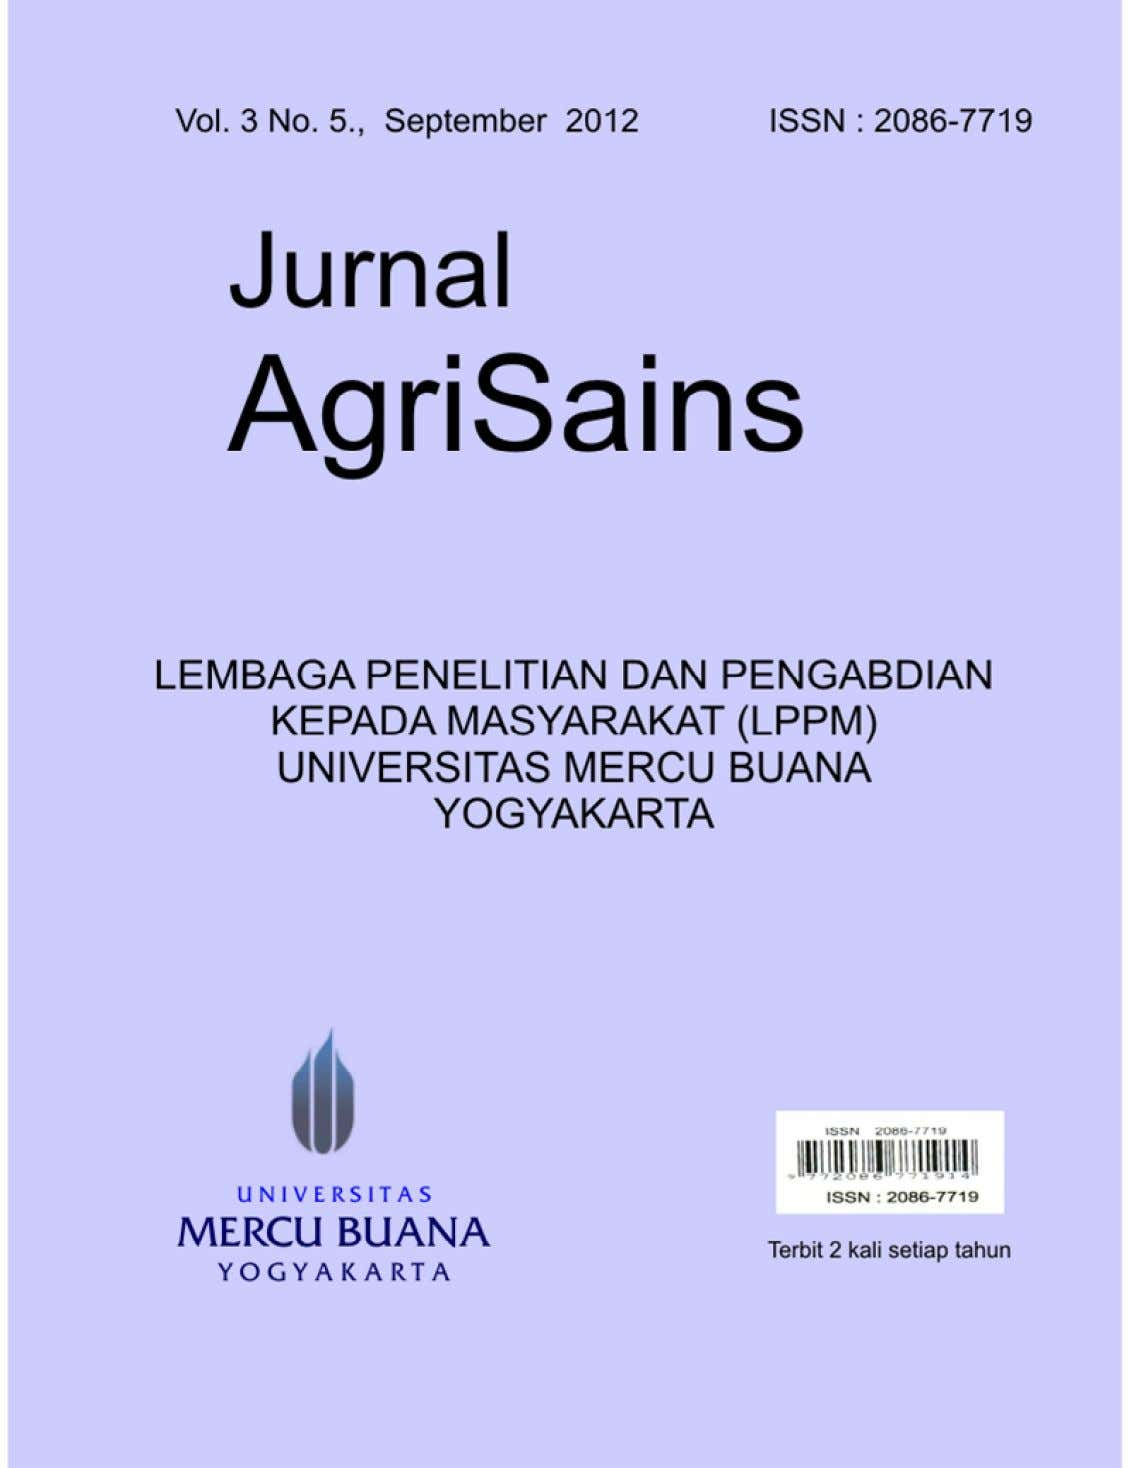 Jurnal AgriSains Vol. 3 No. 5., September 2012 ISSN : 2086-7719 i